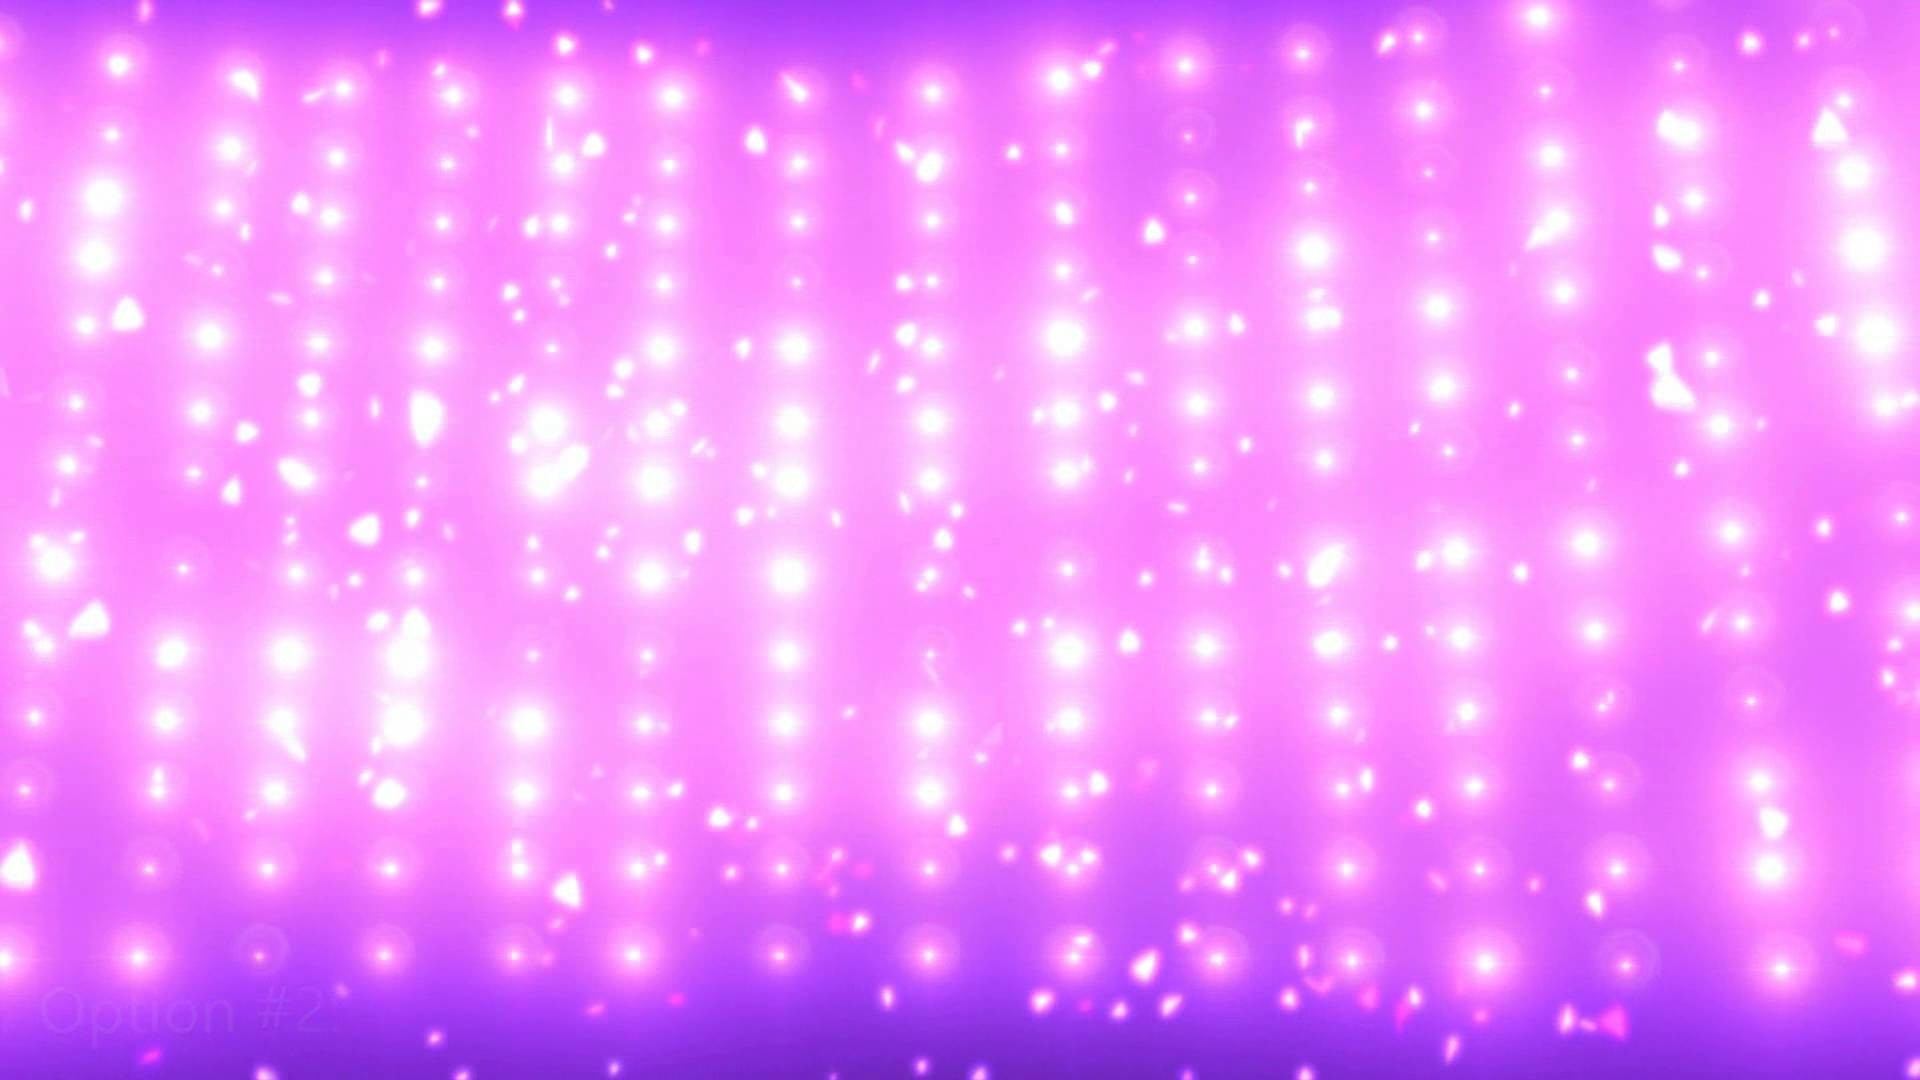 Broadway Light Show Background Pink / Purple Motion Graphic Free Download –  YouTube